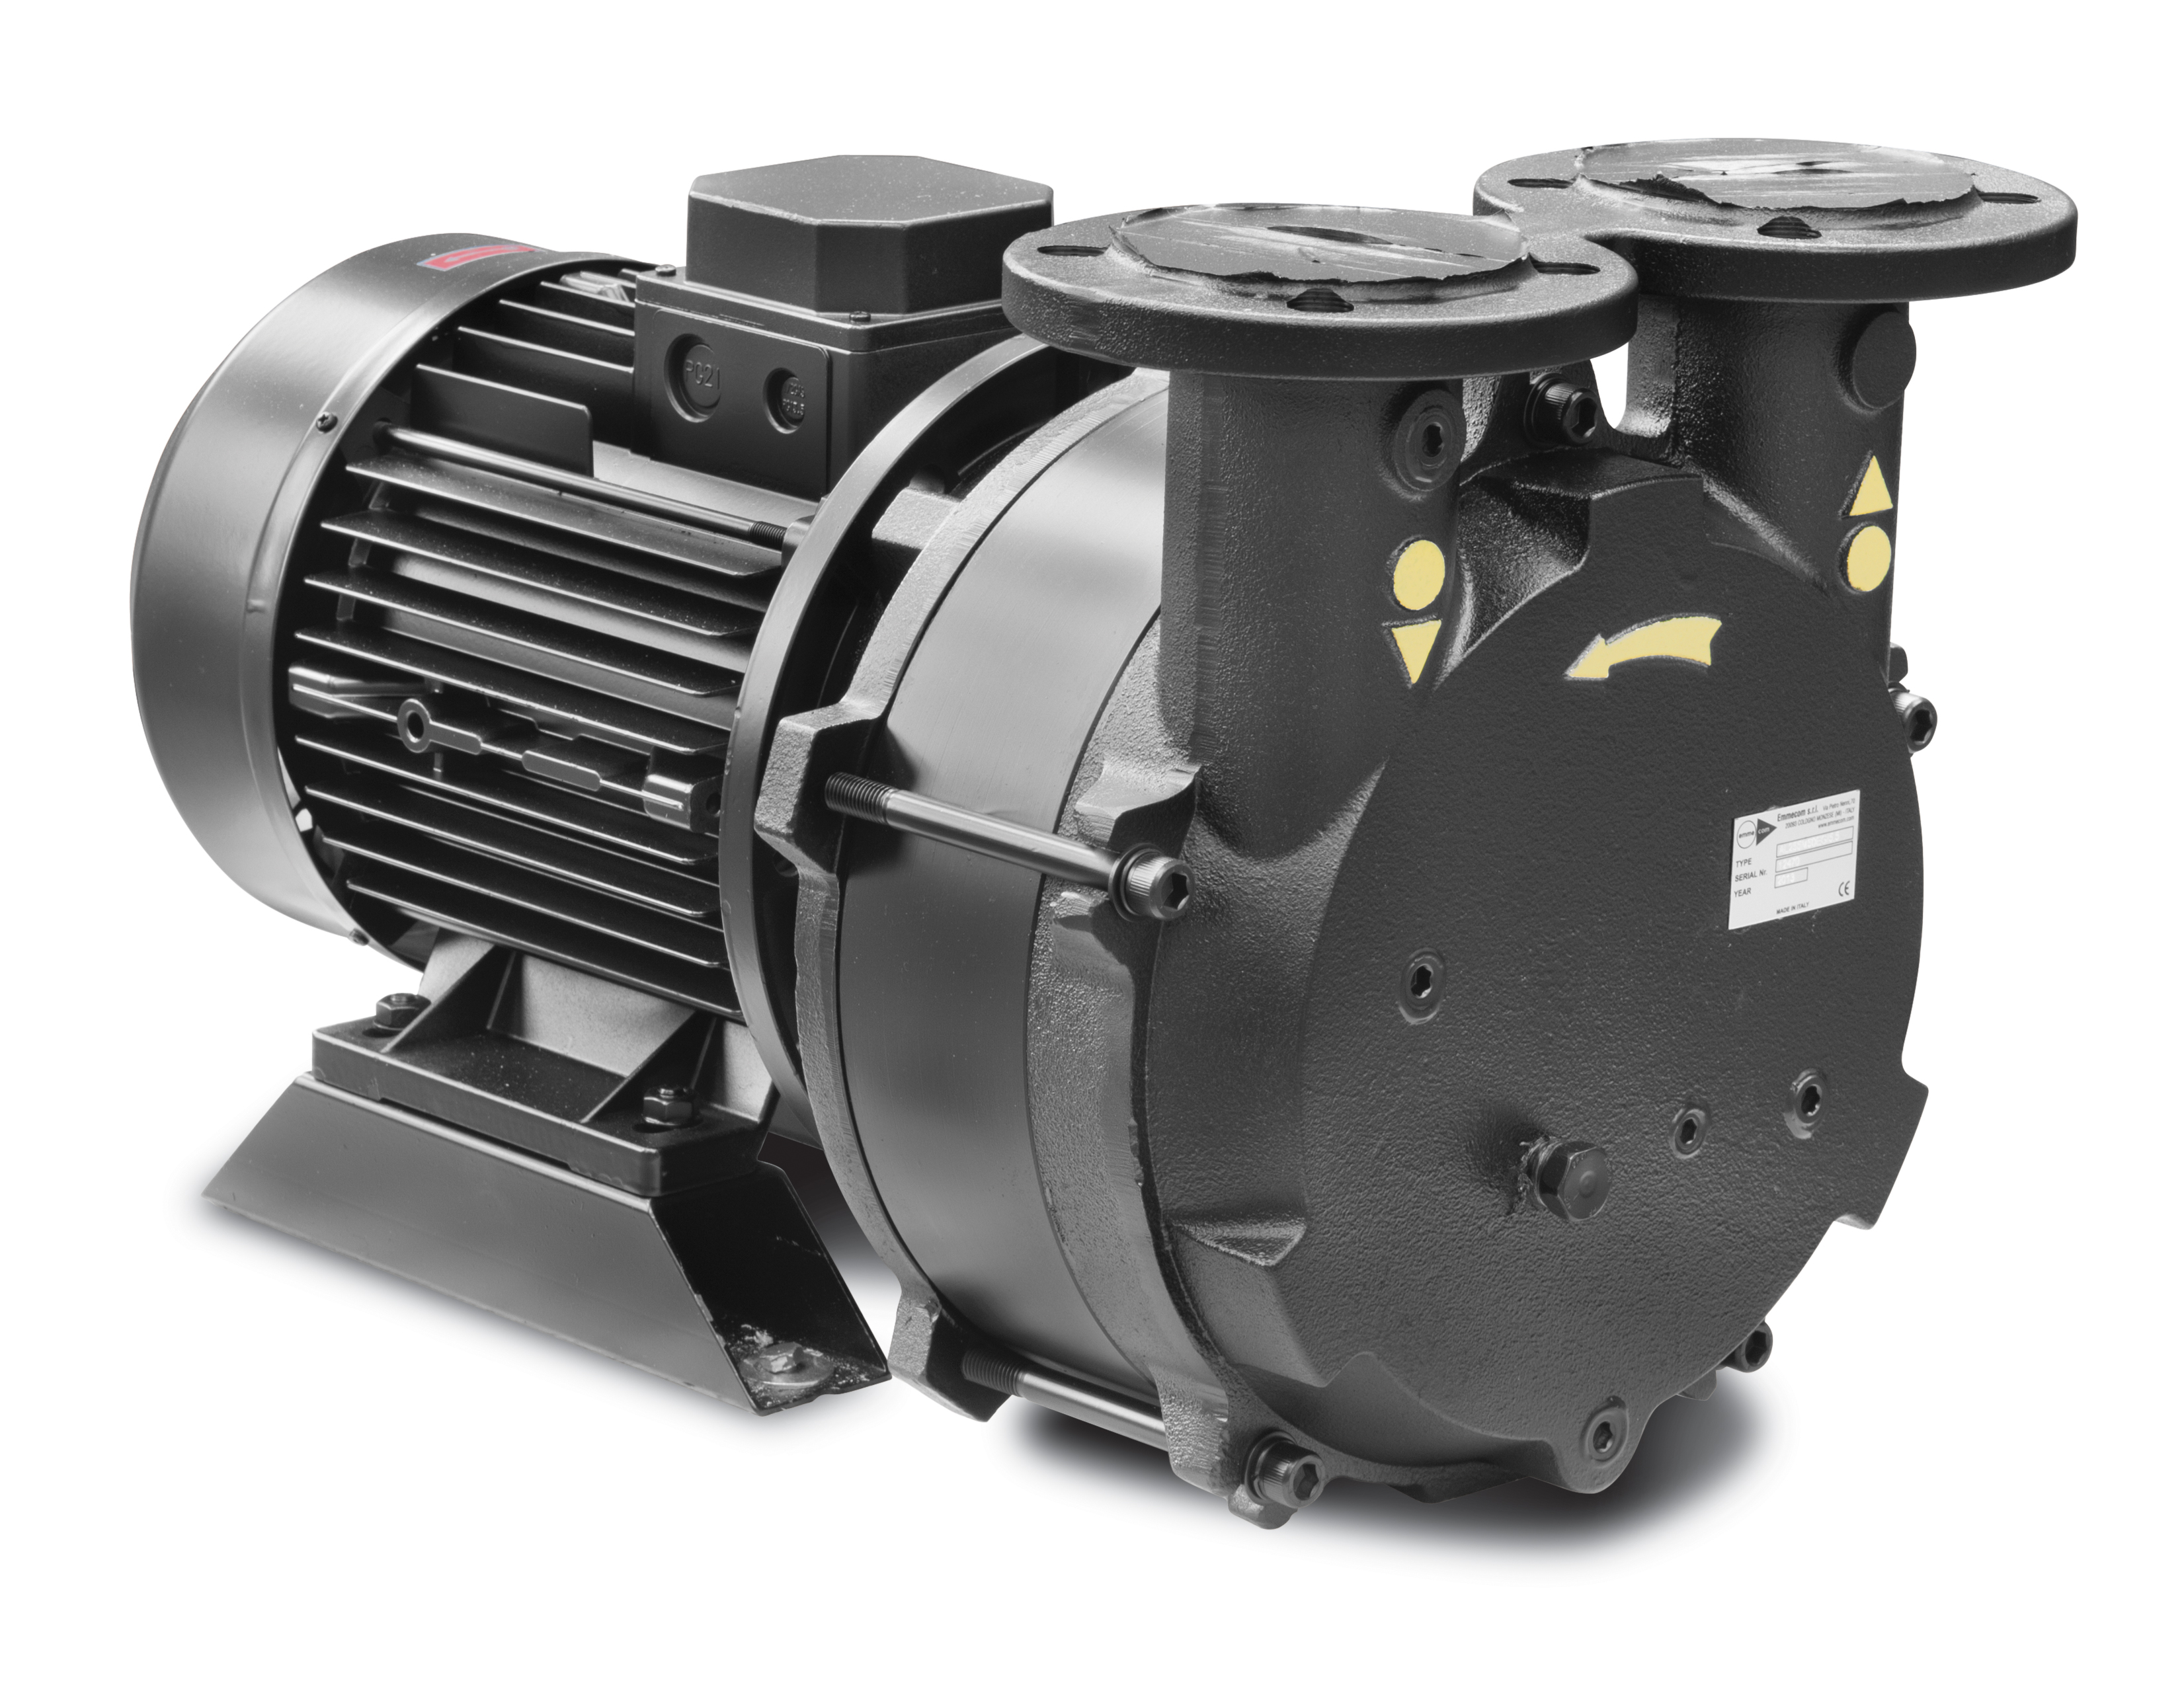 the liquid ring pump Description the liquid ring vacuum pump model al50m is single stage type fitted with vary port valve, in monoblok version compact, flexible in performance, achieves 33 mbar abs, suitable to suck vapors and gas with liquid carry over, oil free operation, limited maintenance required.